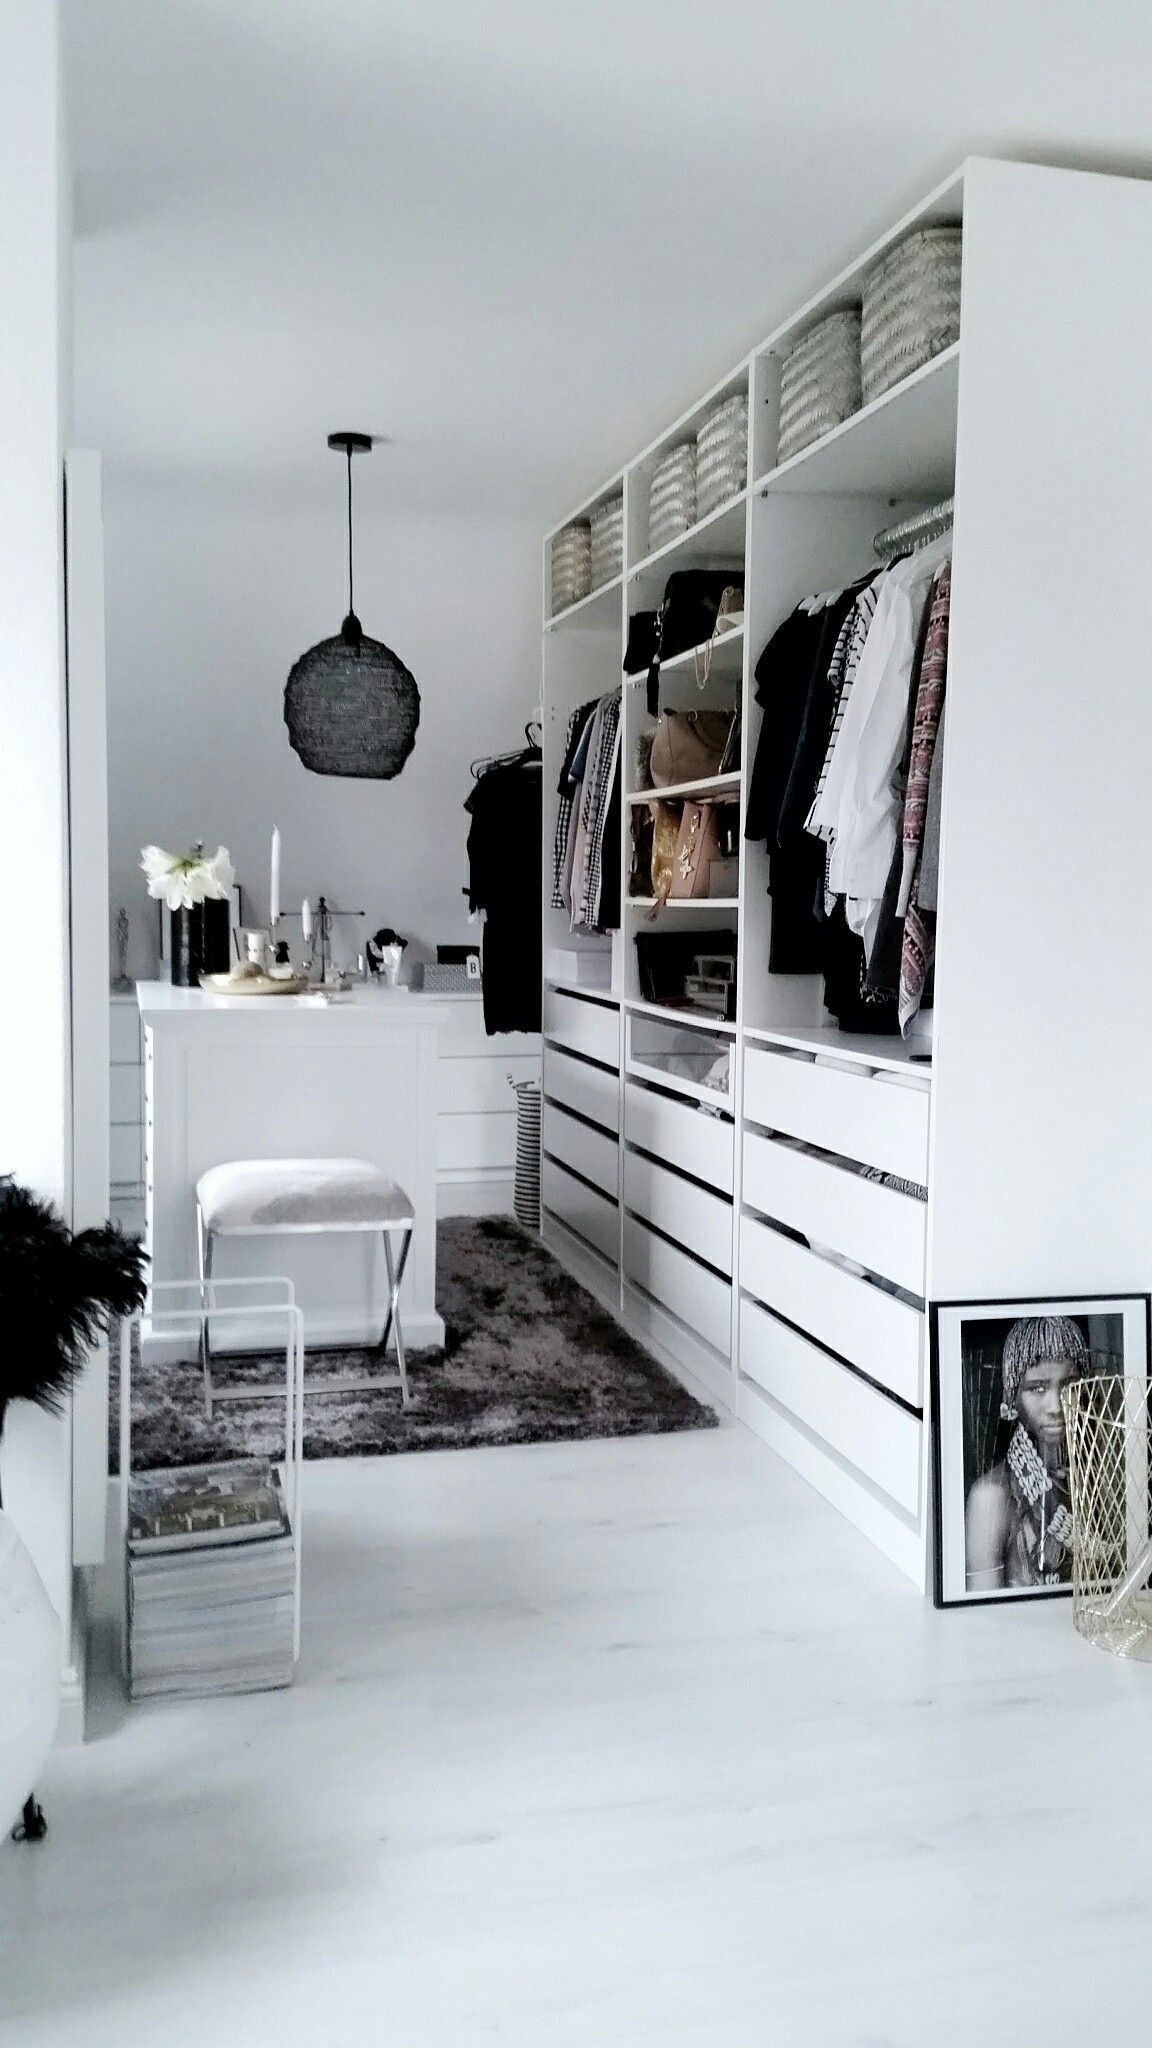 Ikea Pax Ankleidezimmer Inspiration Weiss Dressing Room Schlafzimmer Grau Schlafzimmer Grau Wardrobe Design Bedroom Closet Design Bedroom Design